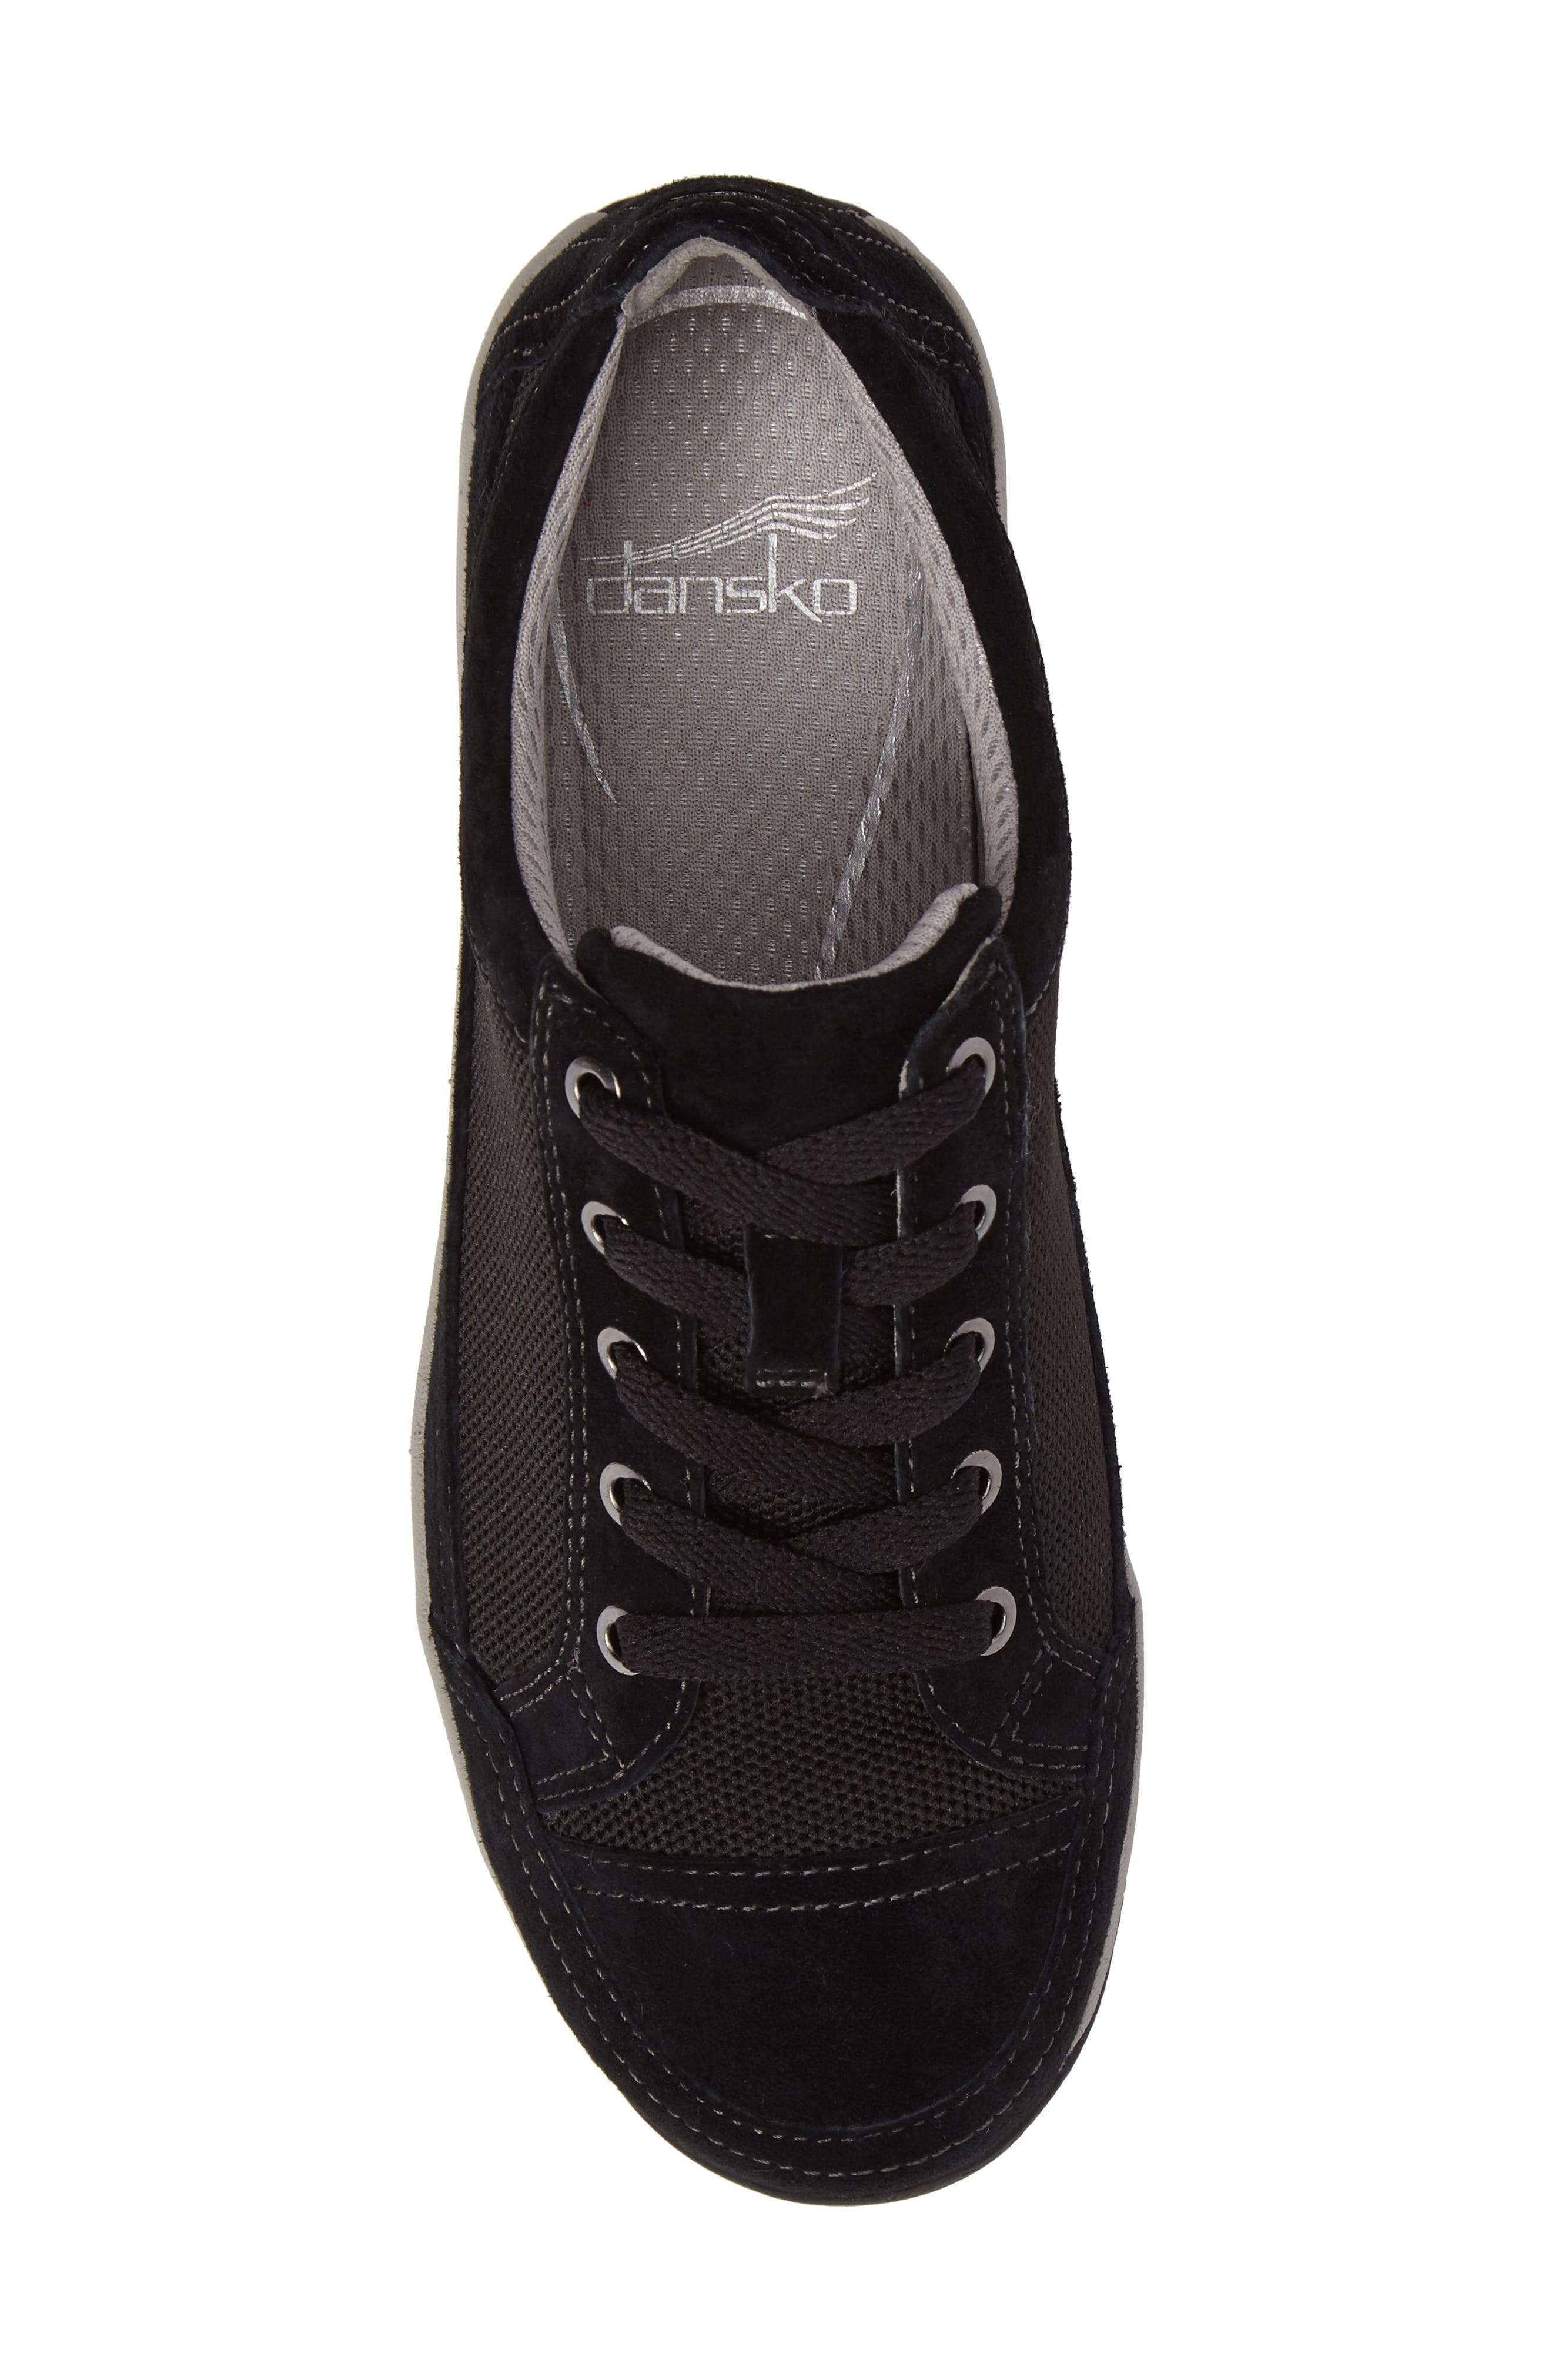 Harmony Sneaker,                             Alternate thumbnail 5, color,                             Black Suede